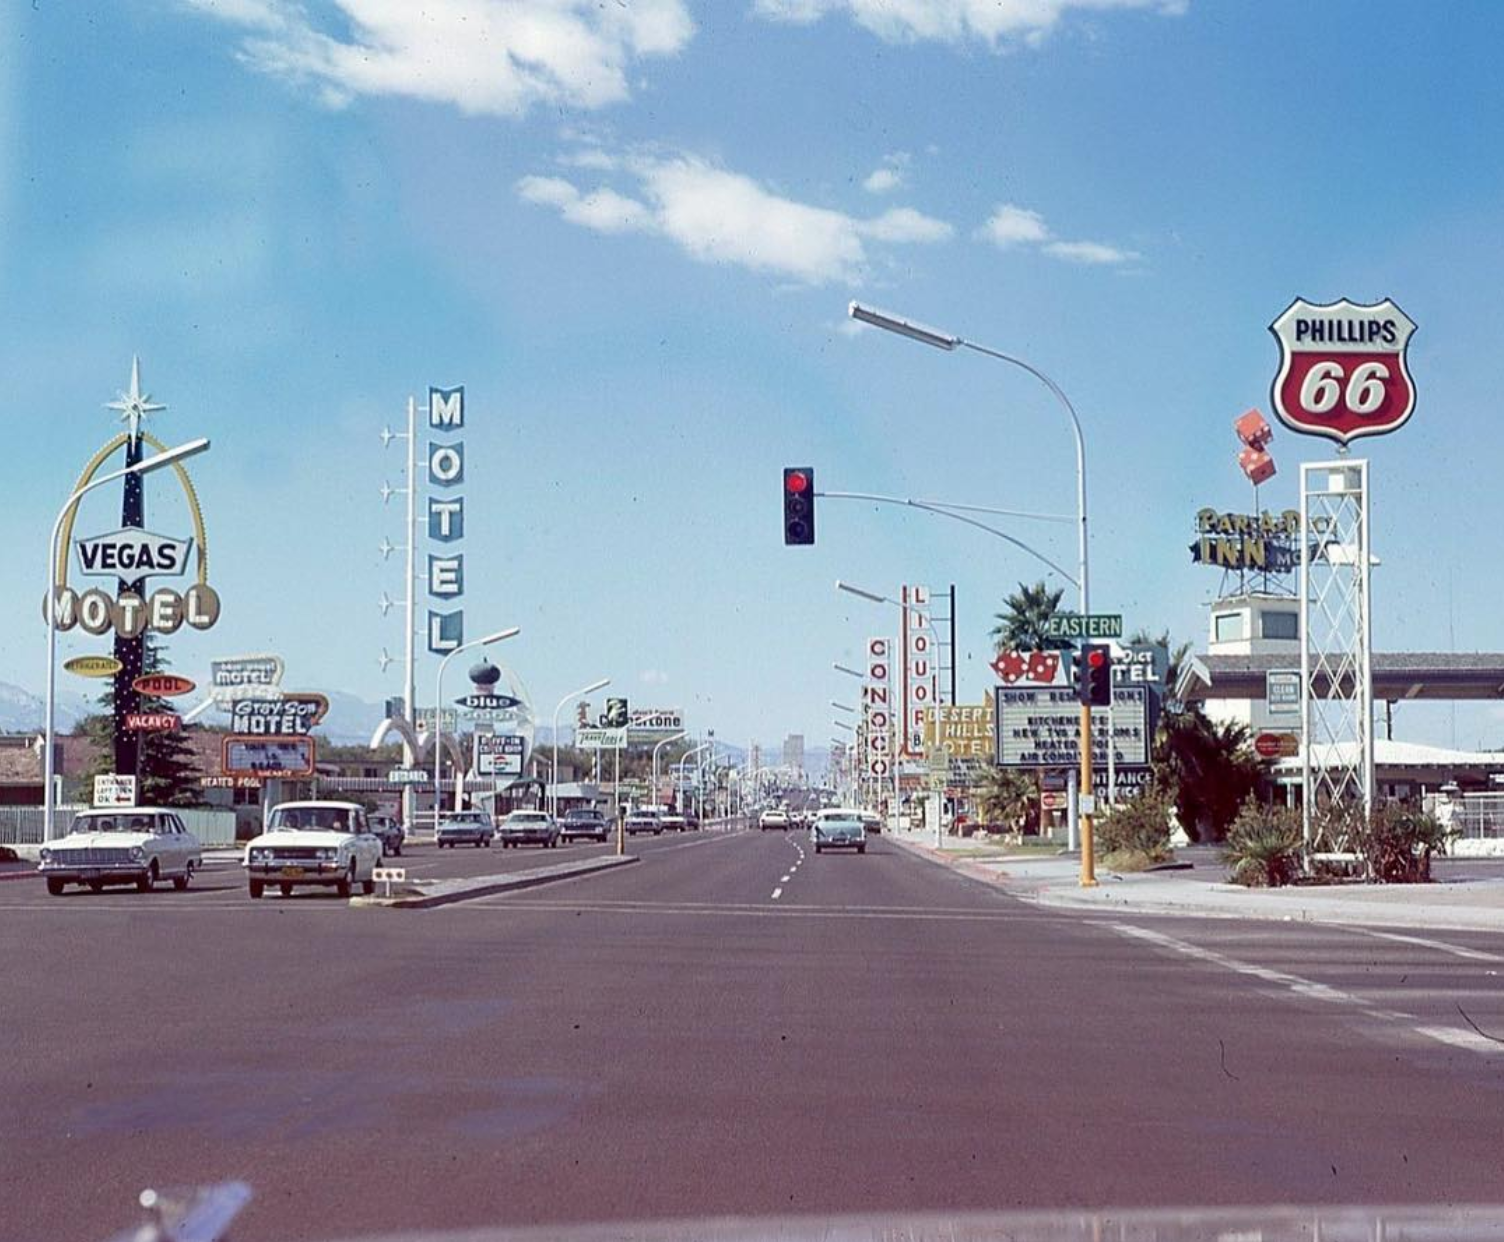 1969. Fremont St at Eastern Ave looking west. Vegas Motel, Blue Angel Motel, and Blue Onion Drive-In on the left. Par-a-Dice Inn and Desert Hills Motel on the right. Desert Hills remains open, and repainted their sign last fall. © Vintage Las Vegas Instagram